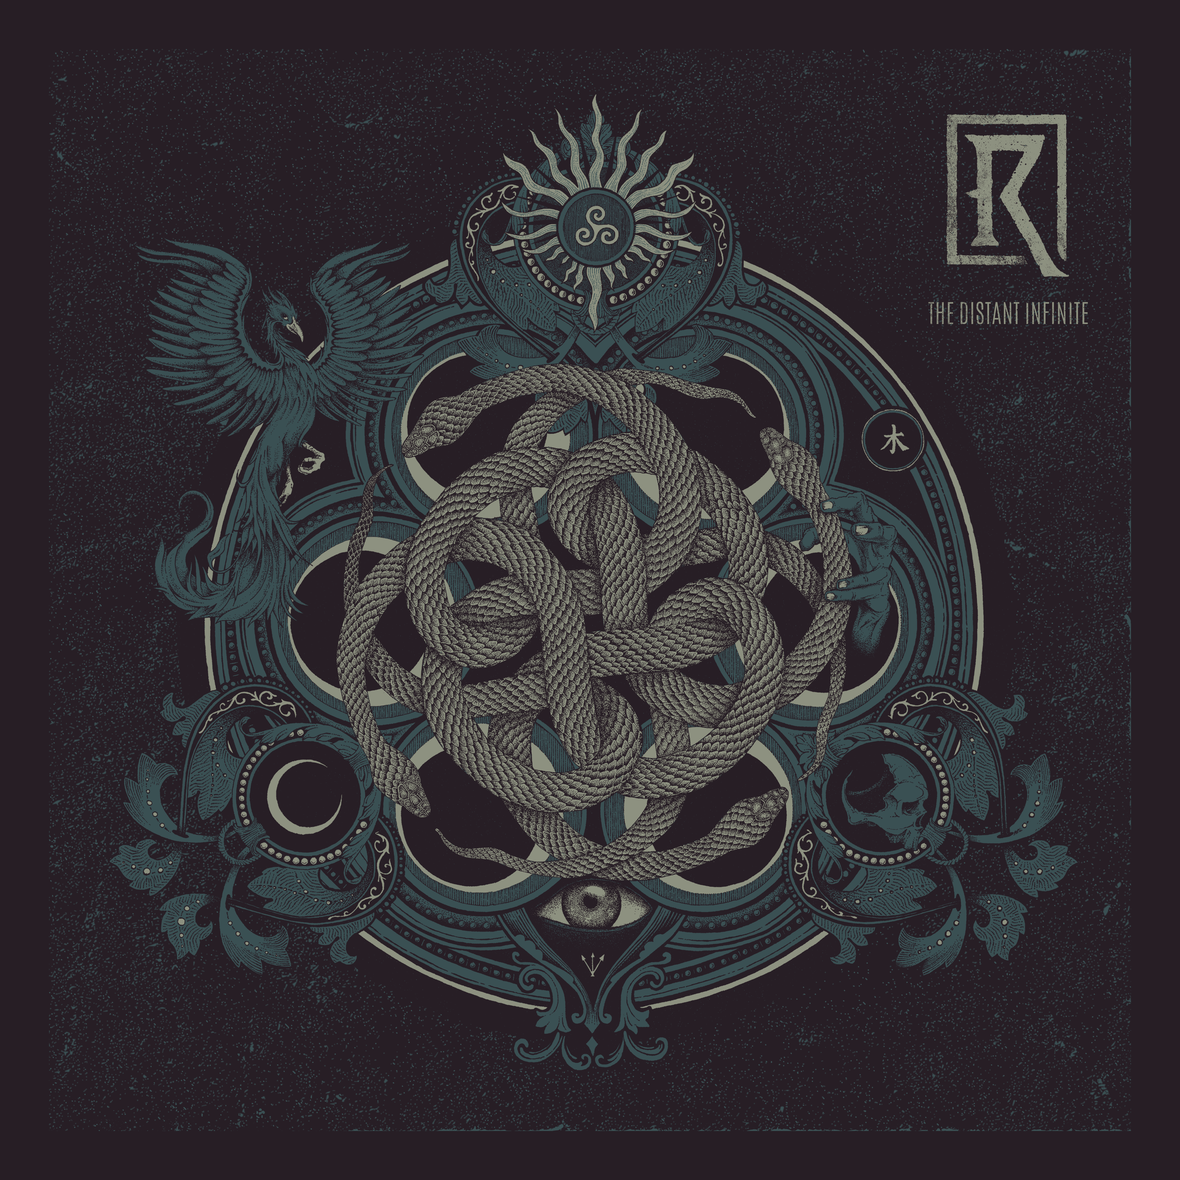 rs DistantInfiniteCOVER-FRONT